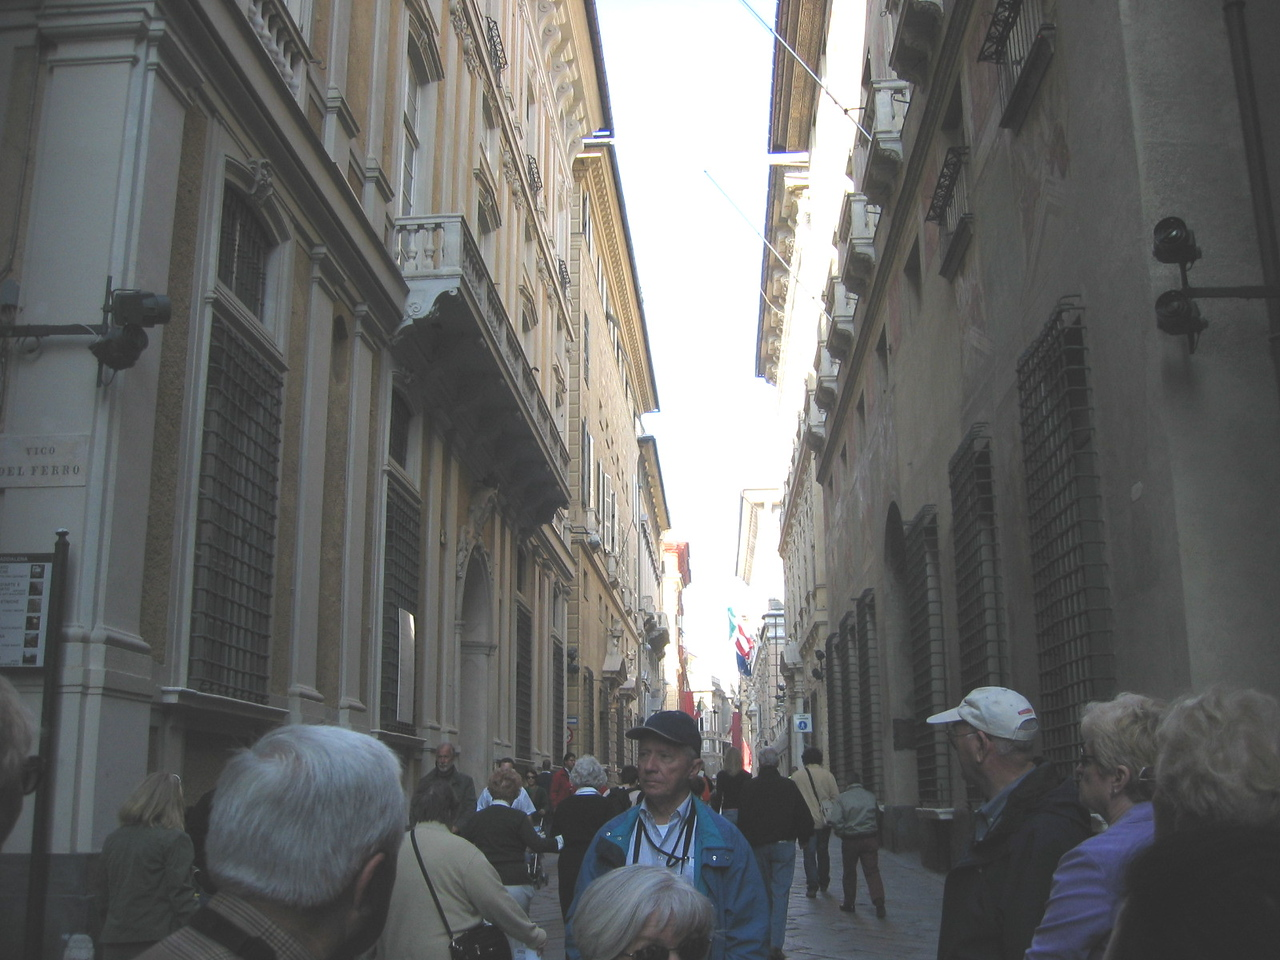 Walking the streets of Genoa.